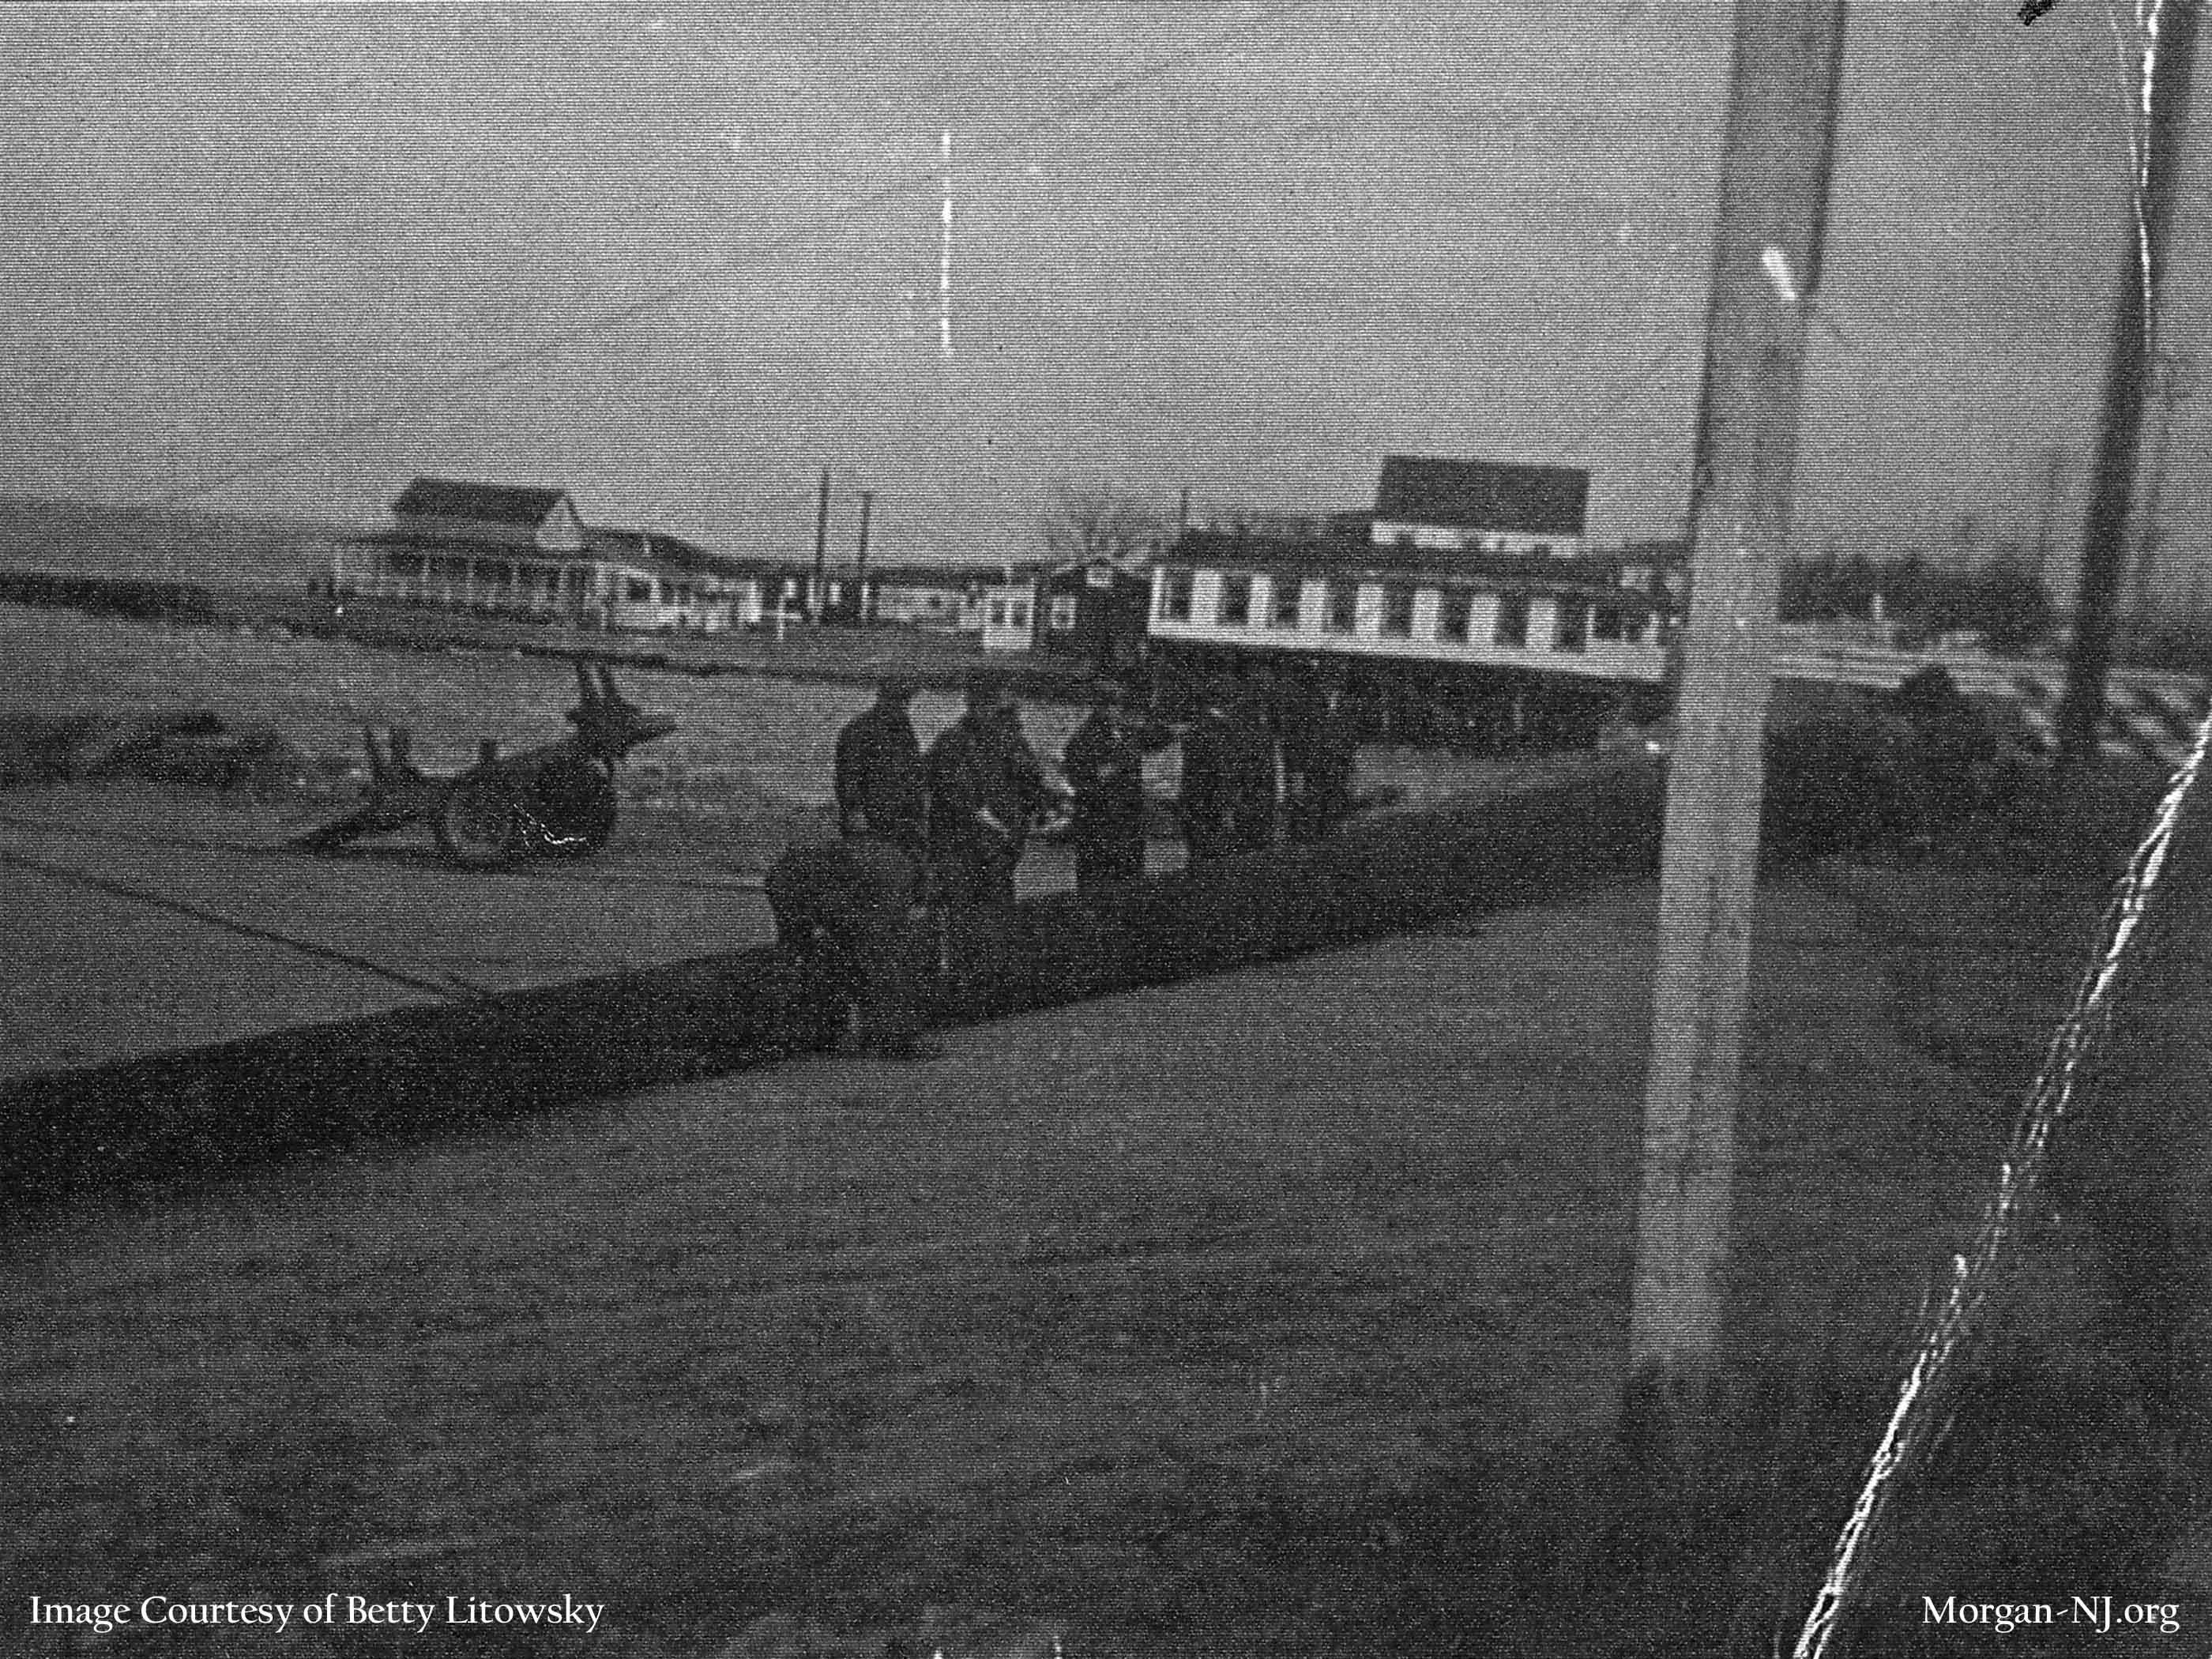 """Looking across Cheesequake Creek Channel toward Morgan Beach from Robert E. Lee Inn in the 1940's sometime after 1943 during a very high tide. """"Hock's Pavilion"""" / Blodgetts Rooming House on the left, Morgan Beach bungalows in the center, and Kaiser's Tavern on the right. Image courtesy of Betty Macrae Litowsky."""